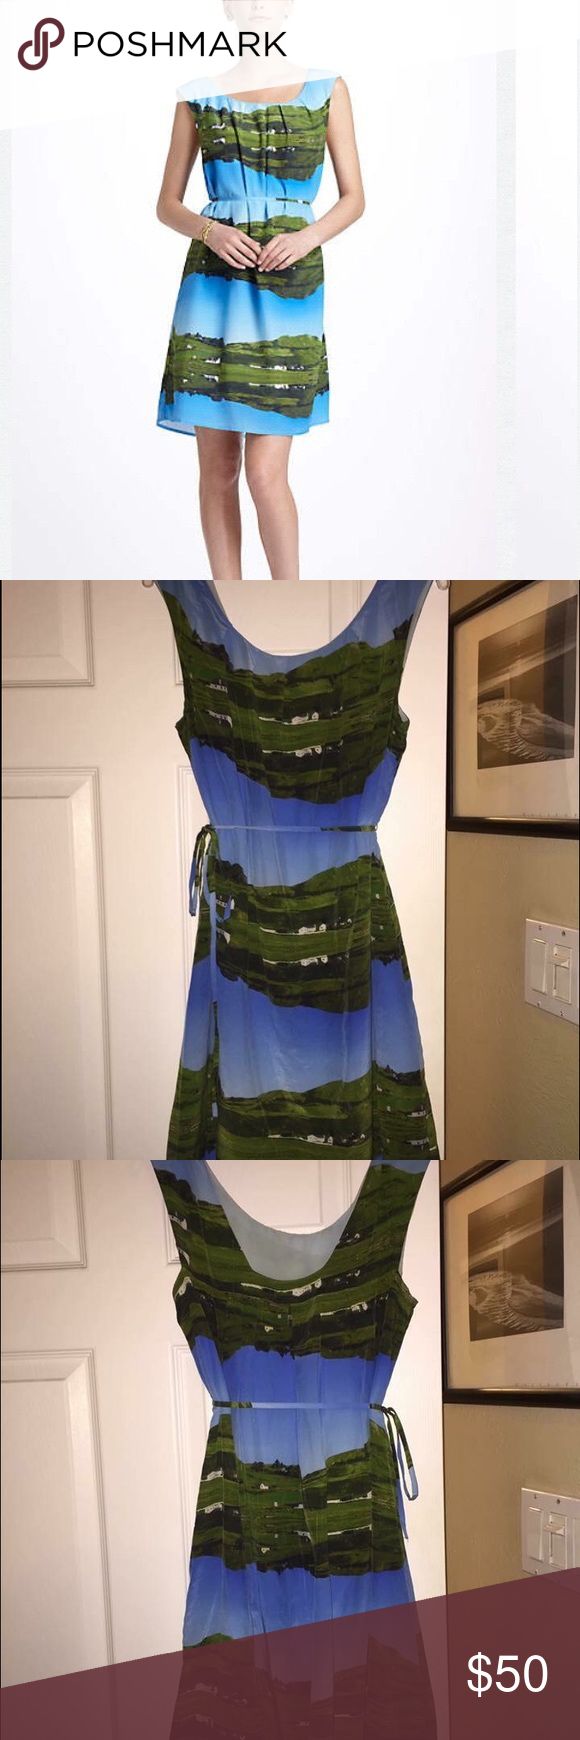 🌷 Anthropologie Meadow Rue Cuillin Dress 🌷 ($248) Lined. No slip. 100% silk. 5 star reviews. Bust 18. Length 30. Needs a new home. Too small for me. Listed on a 24 hr auction with low starting bid so snatch it up while you can! 🌷 Anthropologie Dresses